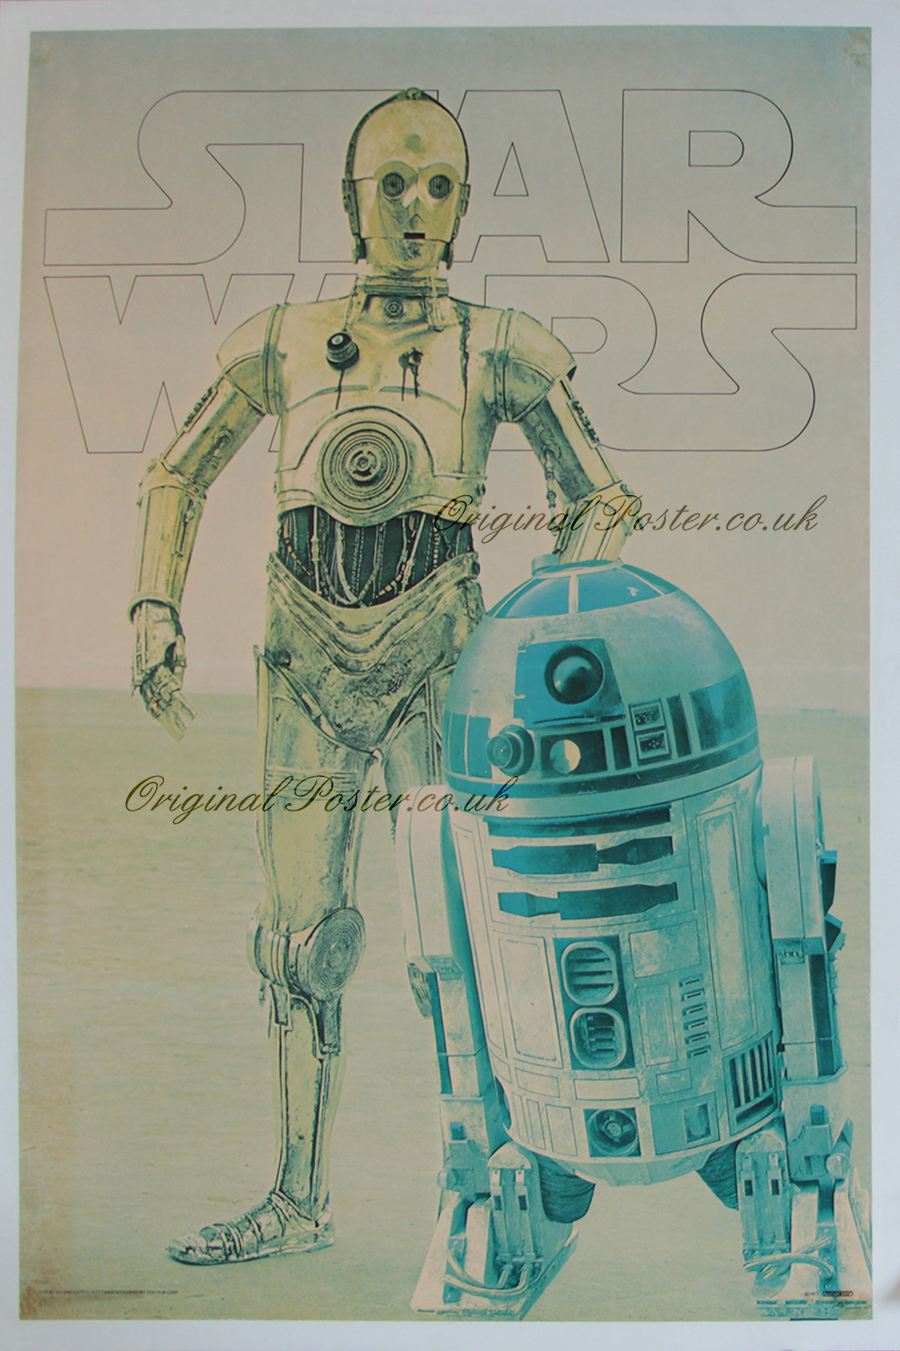 Star Wars Episode Iv A New Hope Memorabilia Original Poster Vintage Film And Movie Posters